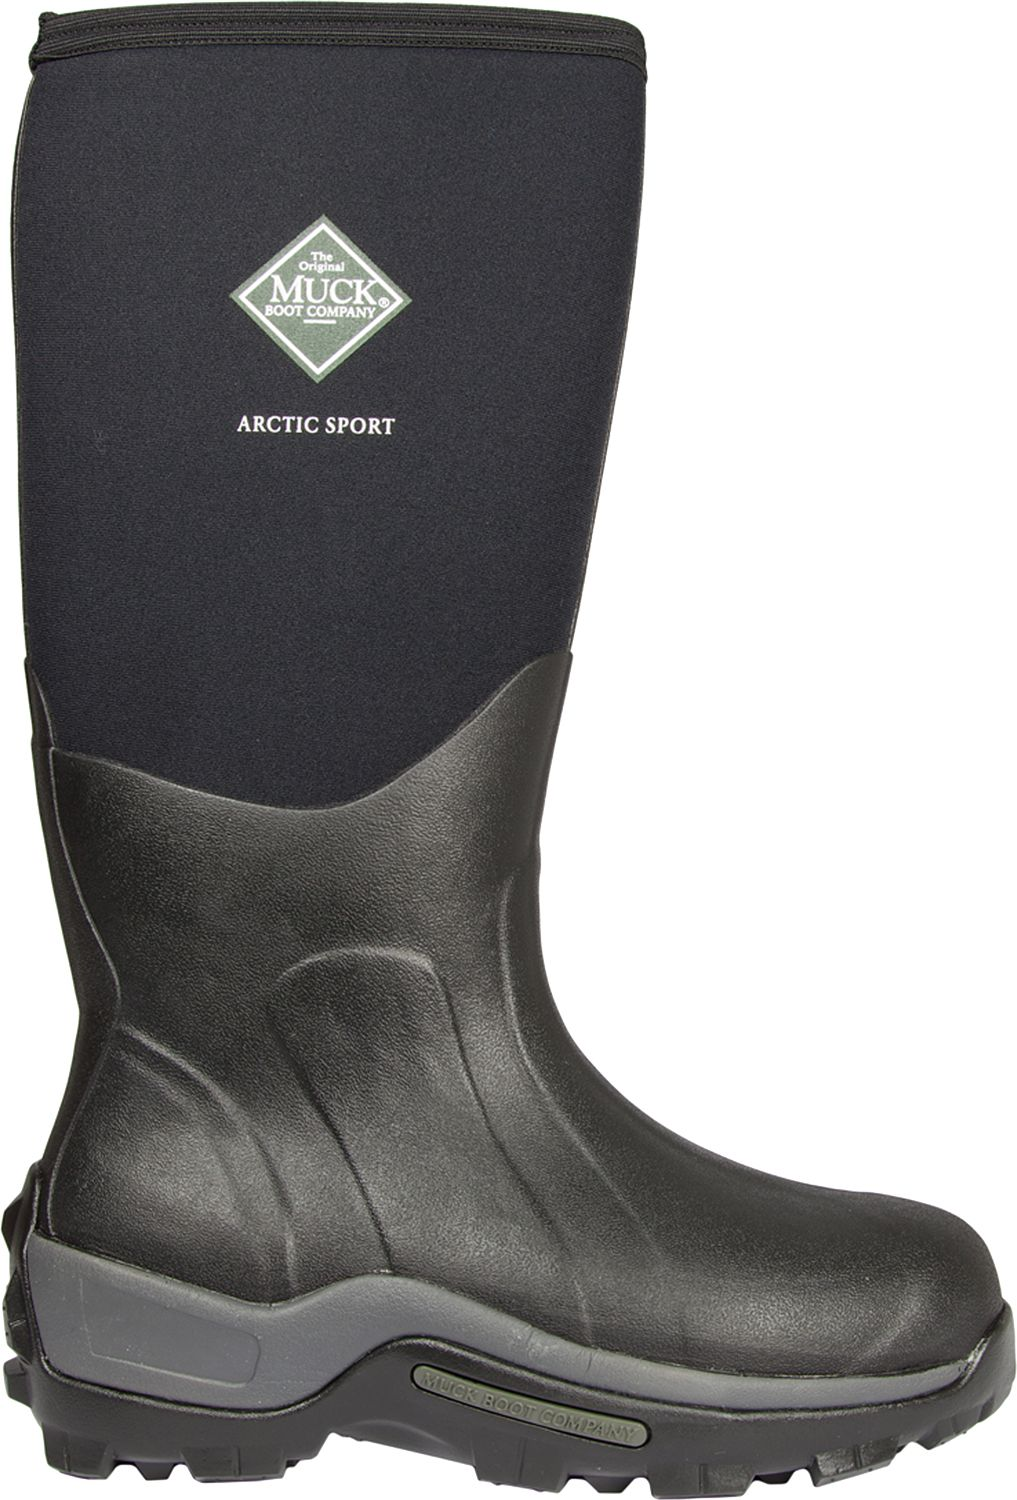 Muck Rubber Hunting Boots Coltford Boots